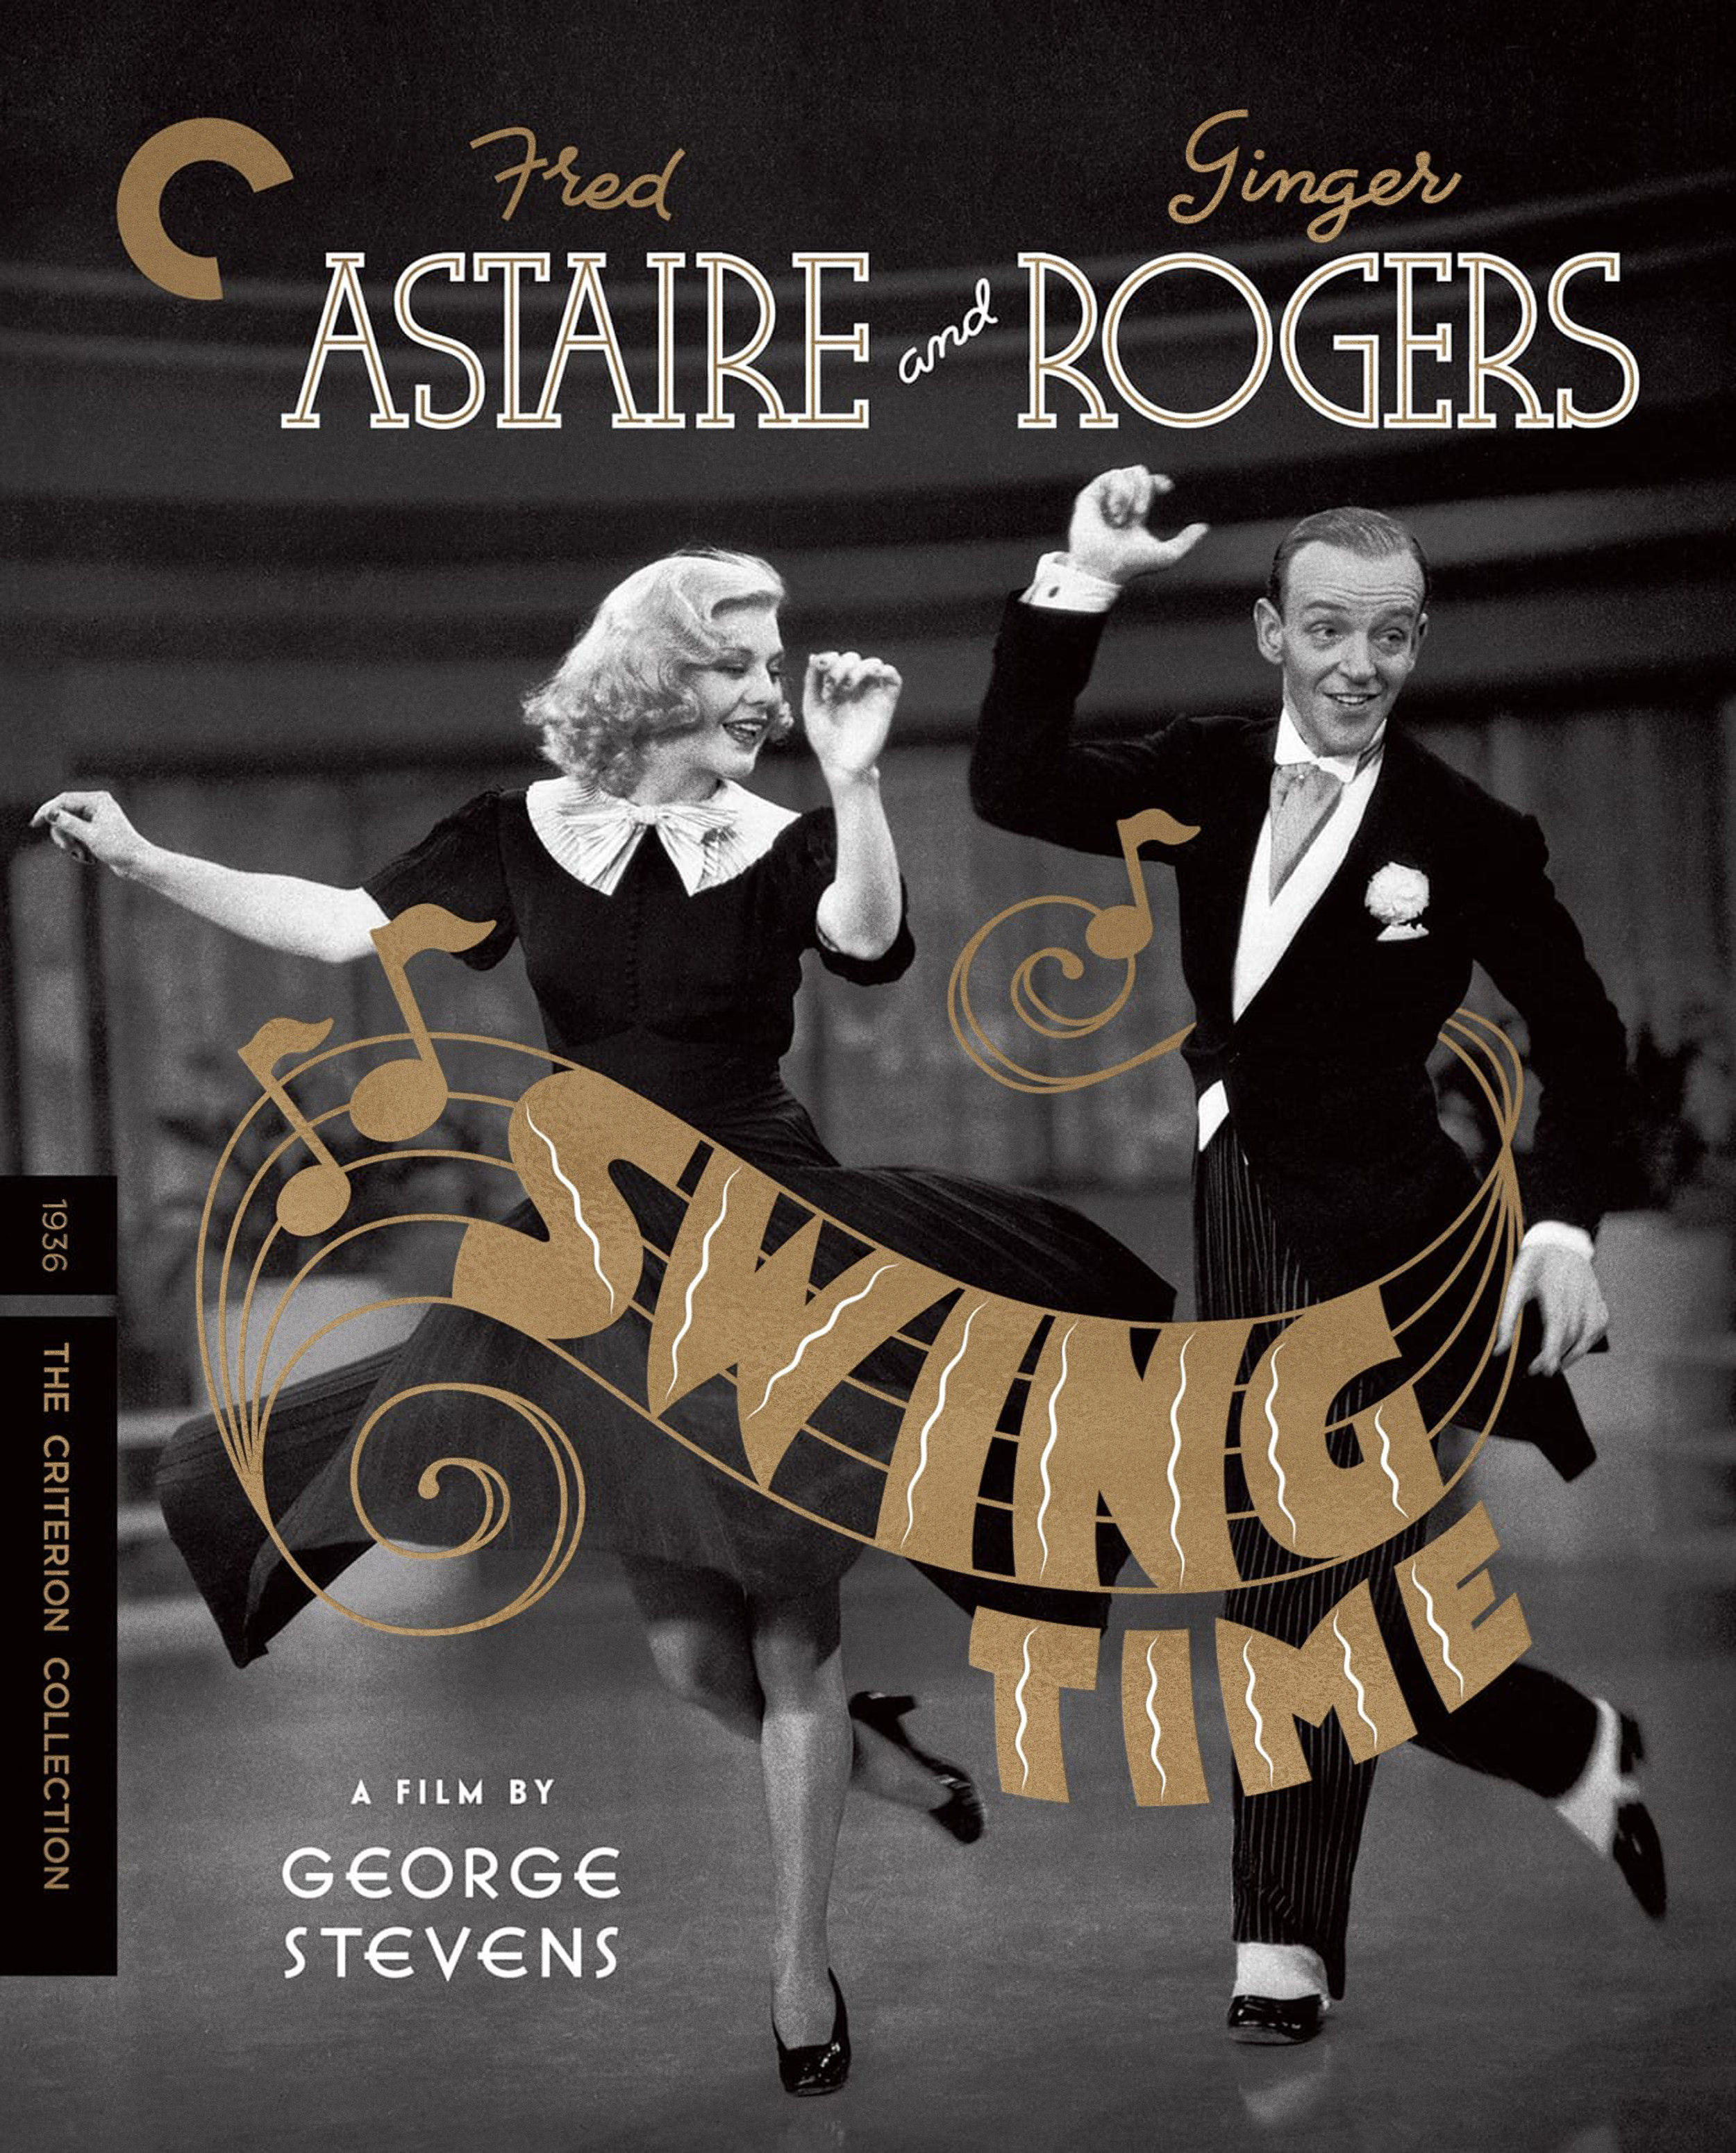 Swing Time  DVD / Blu-ray Package •  Design and Lettering